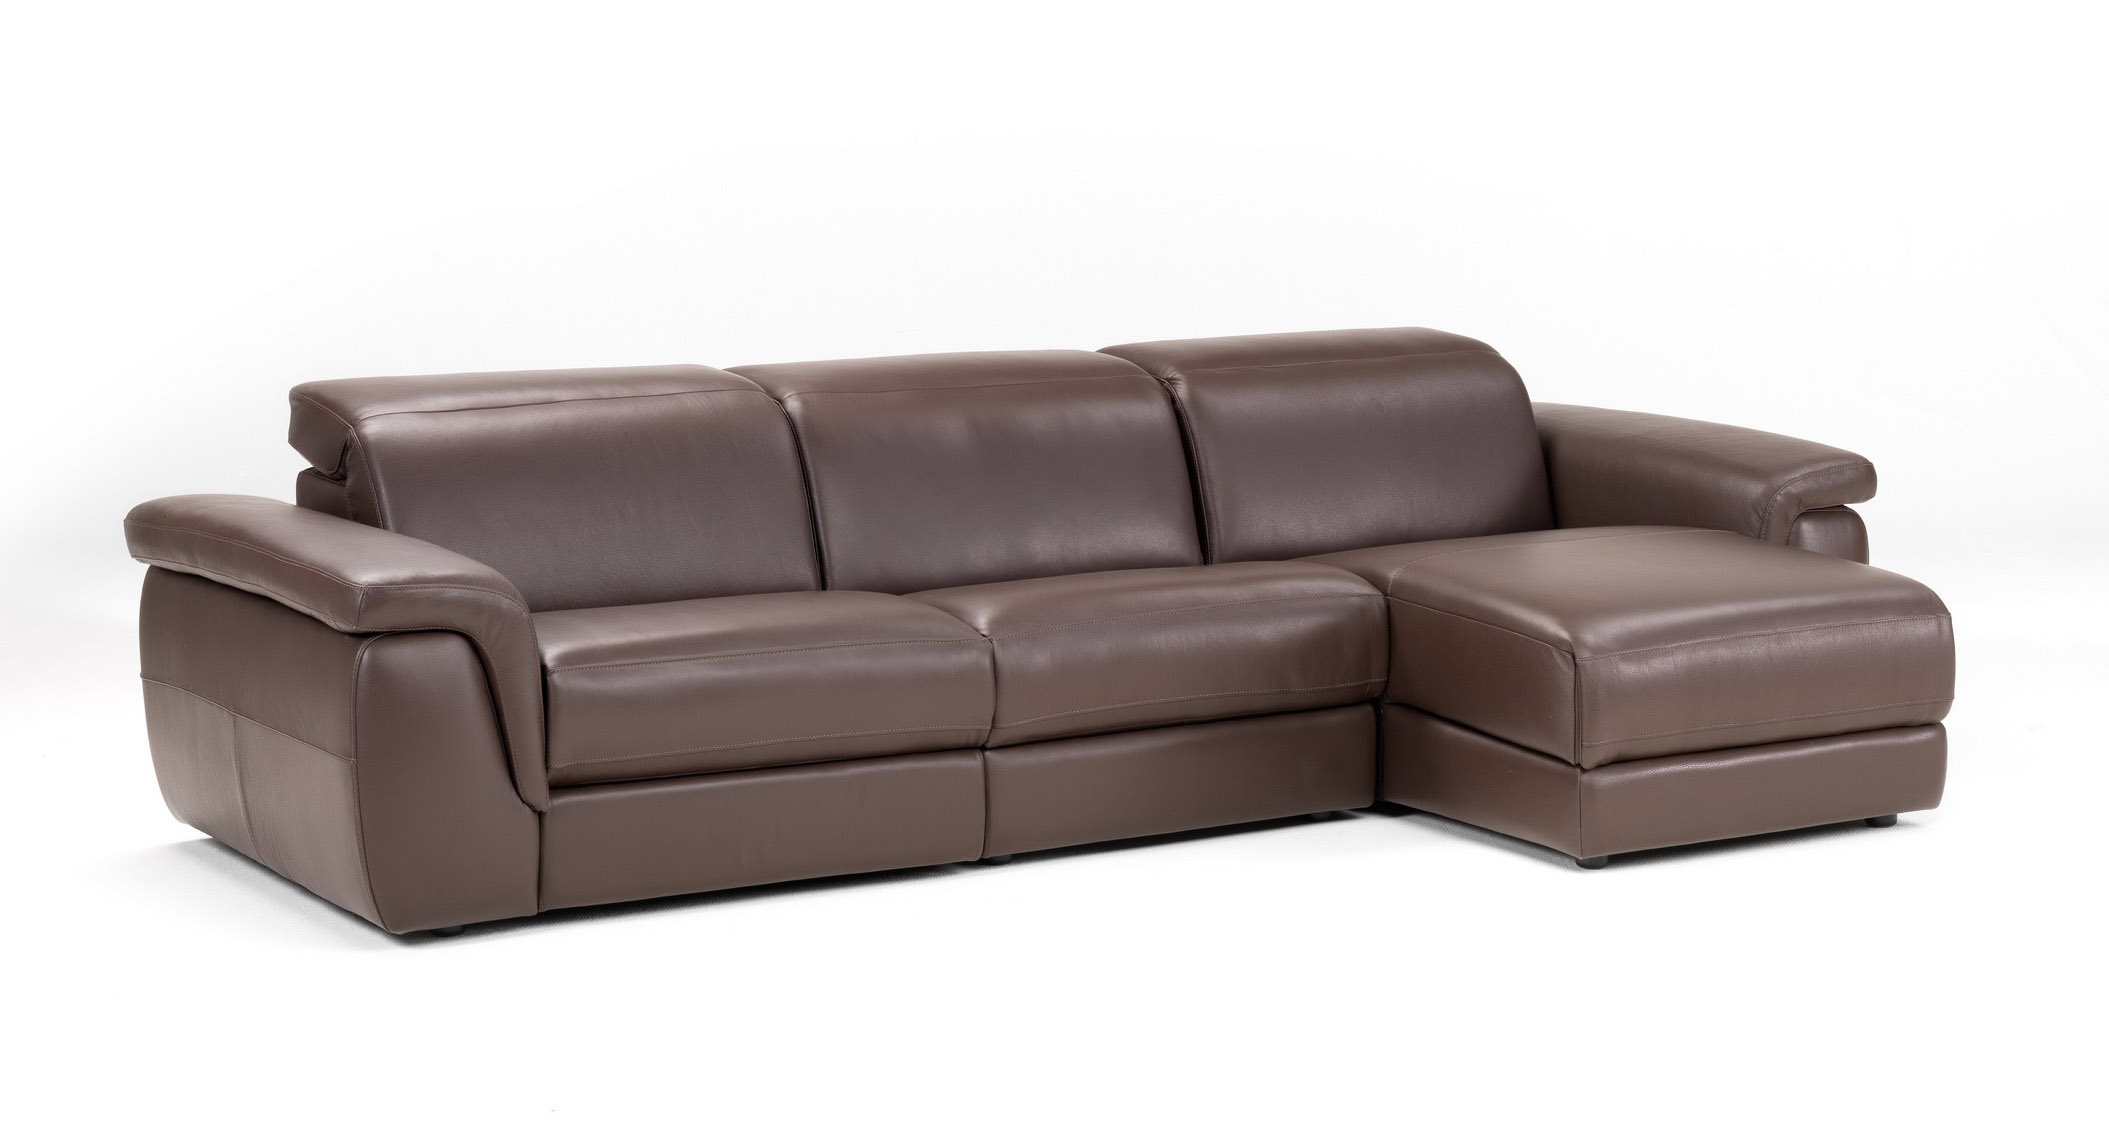 Industria Divani E Poltrone Lounge Style Brown Contemporary Sectionals Set Baltimore